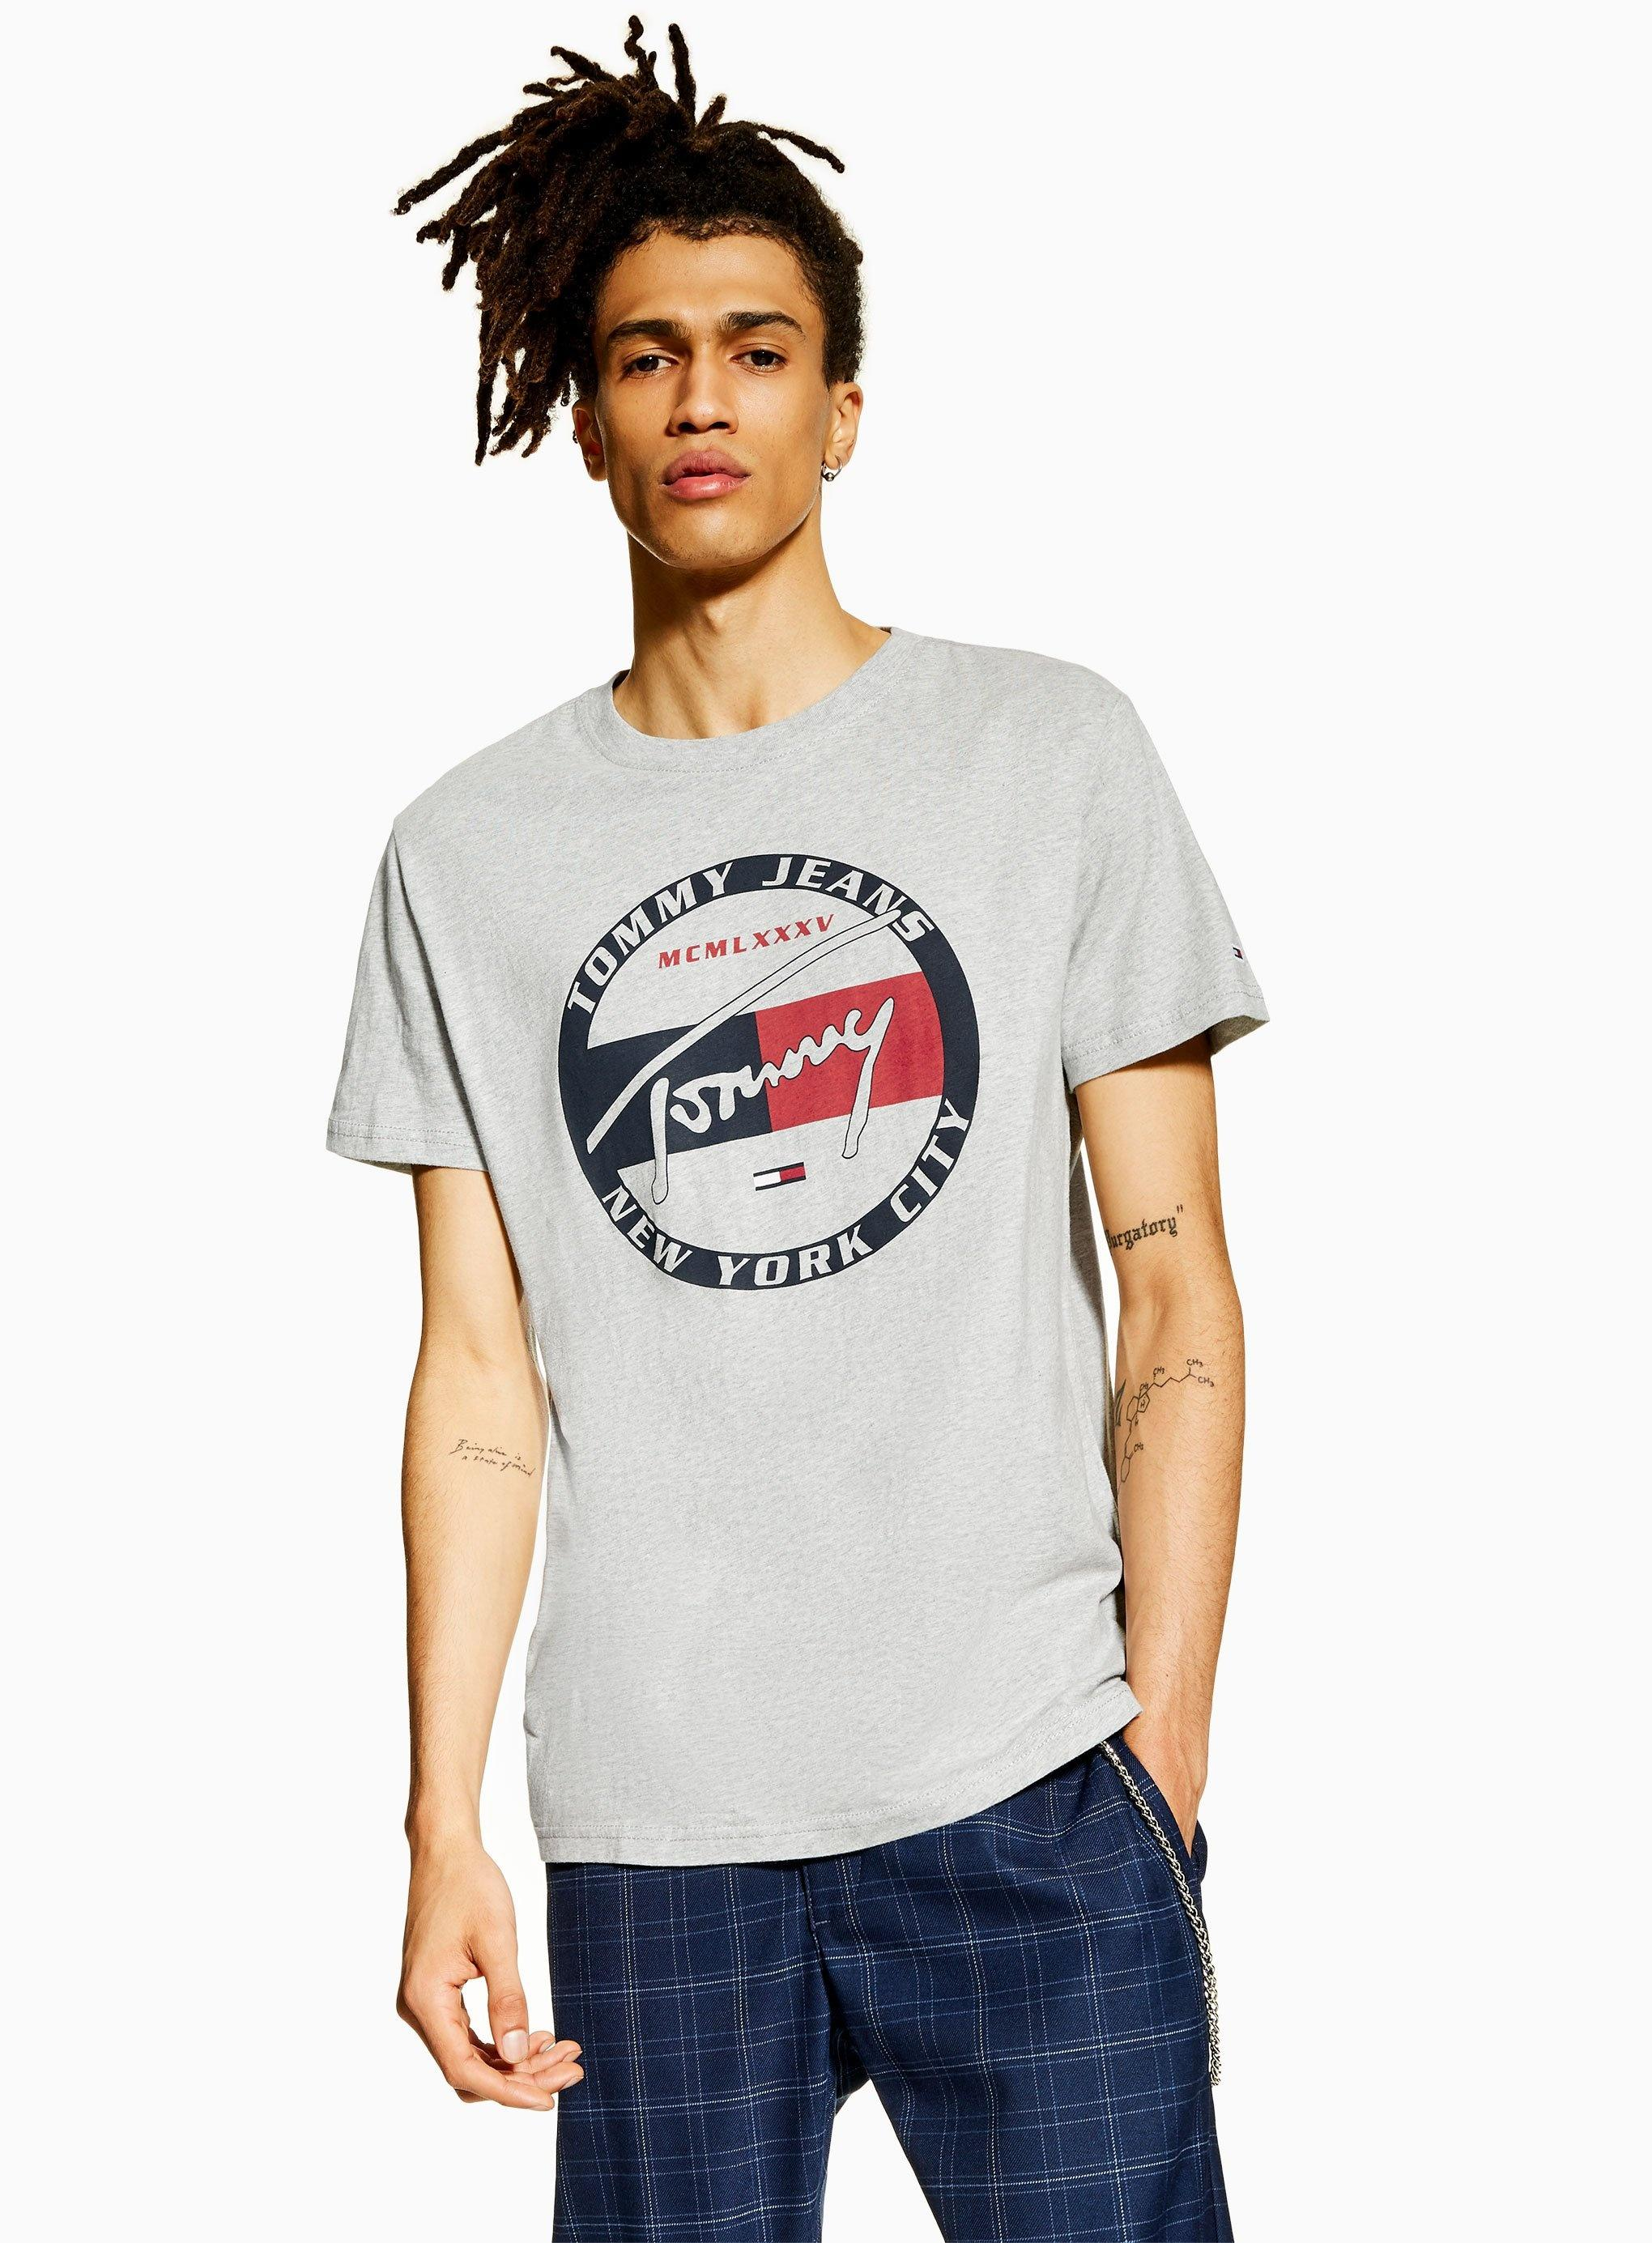 c46beac3 Tommy Hilfiger Tjm Circle Graphic Tee T in Gray for Men - Save 20 ...